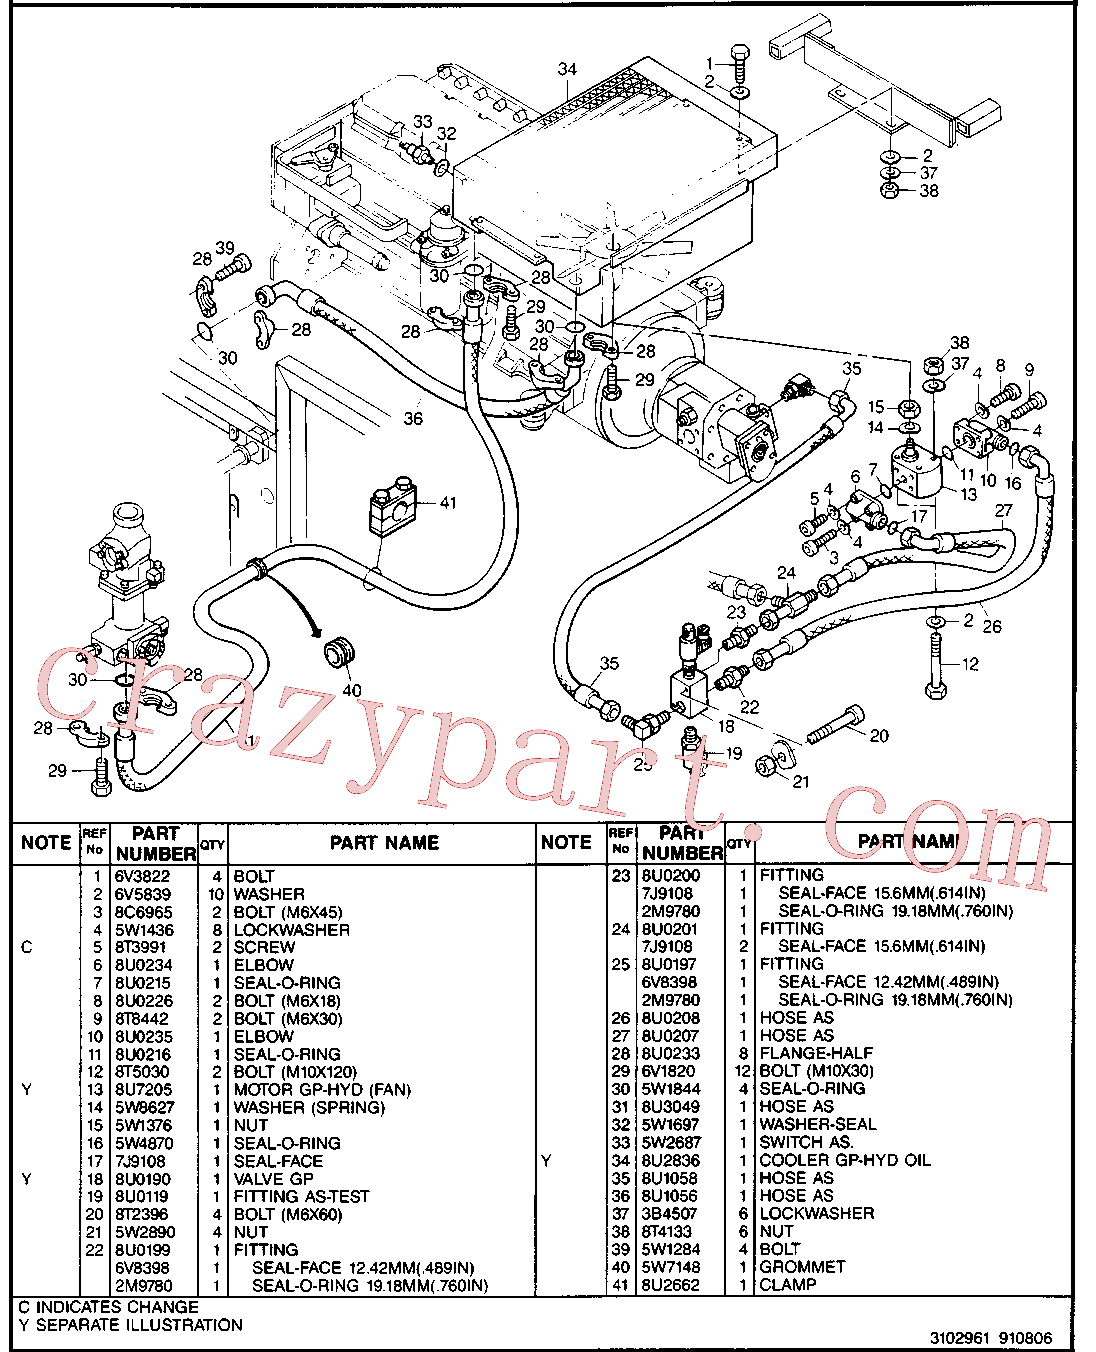 CAT 8U-2156 for 214B Excavator(EXC) hydraulic system 8U-3029 Assembly